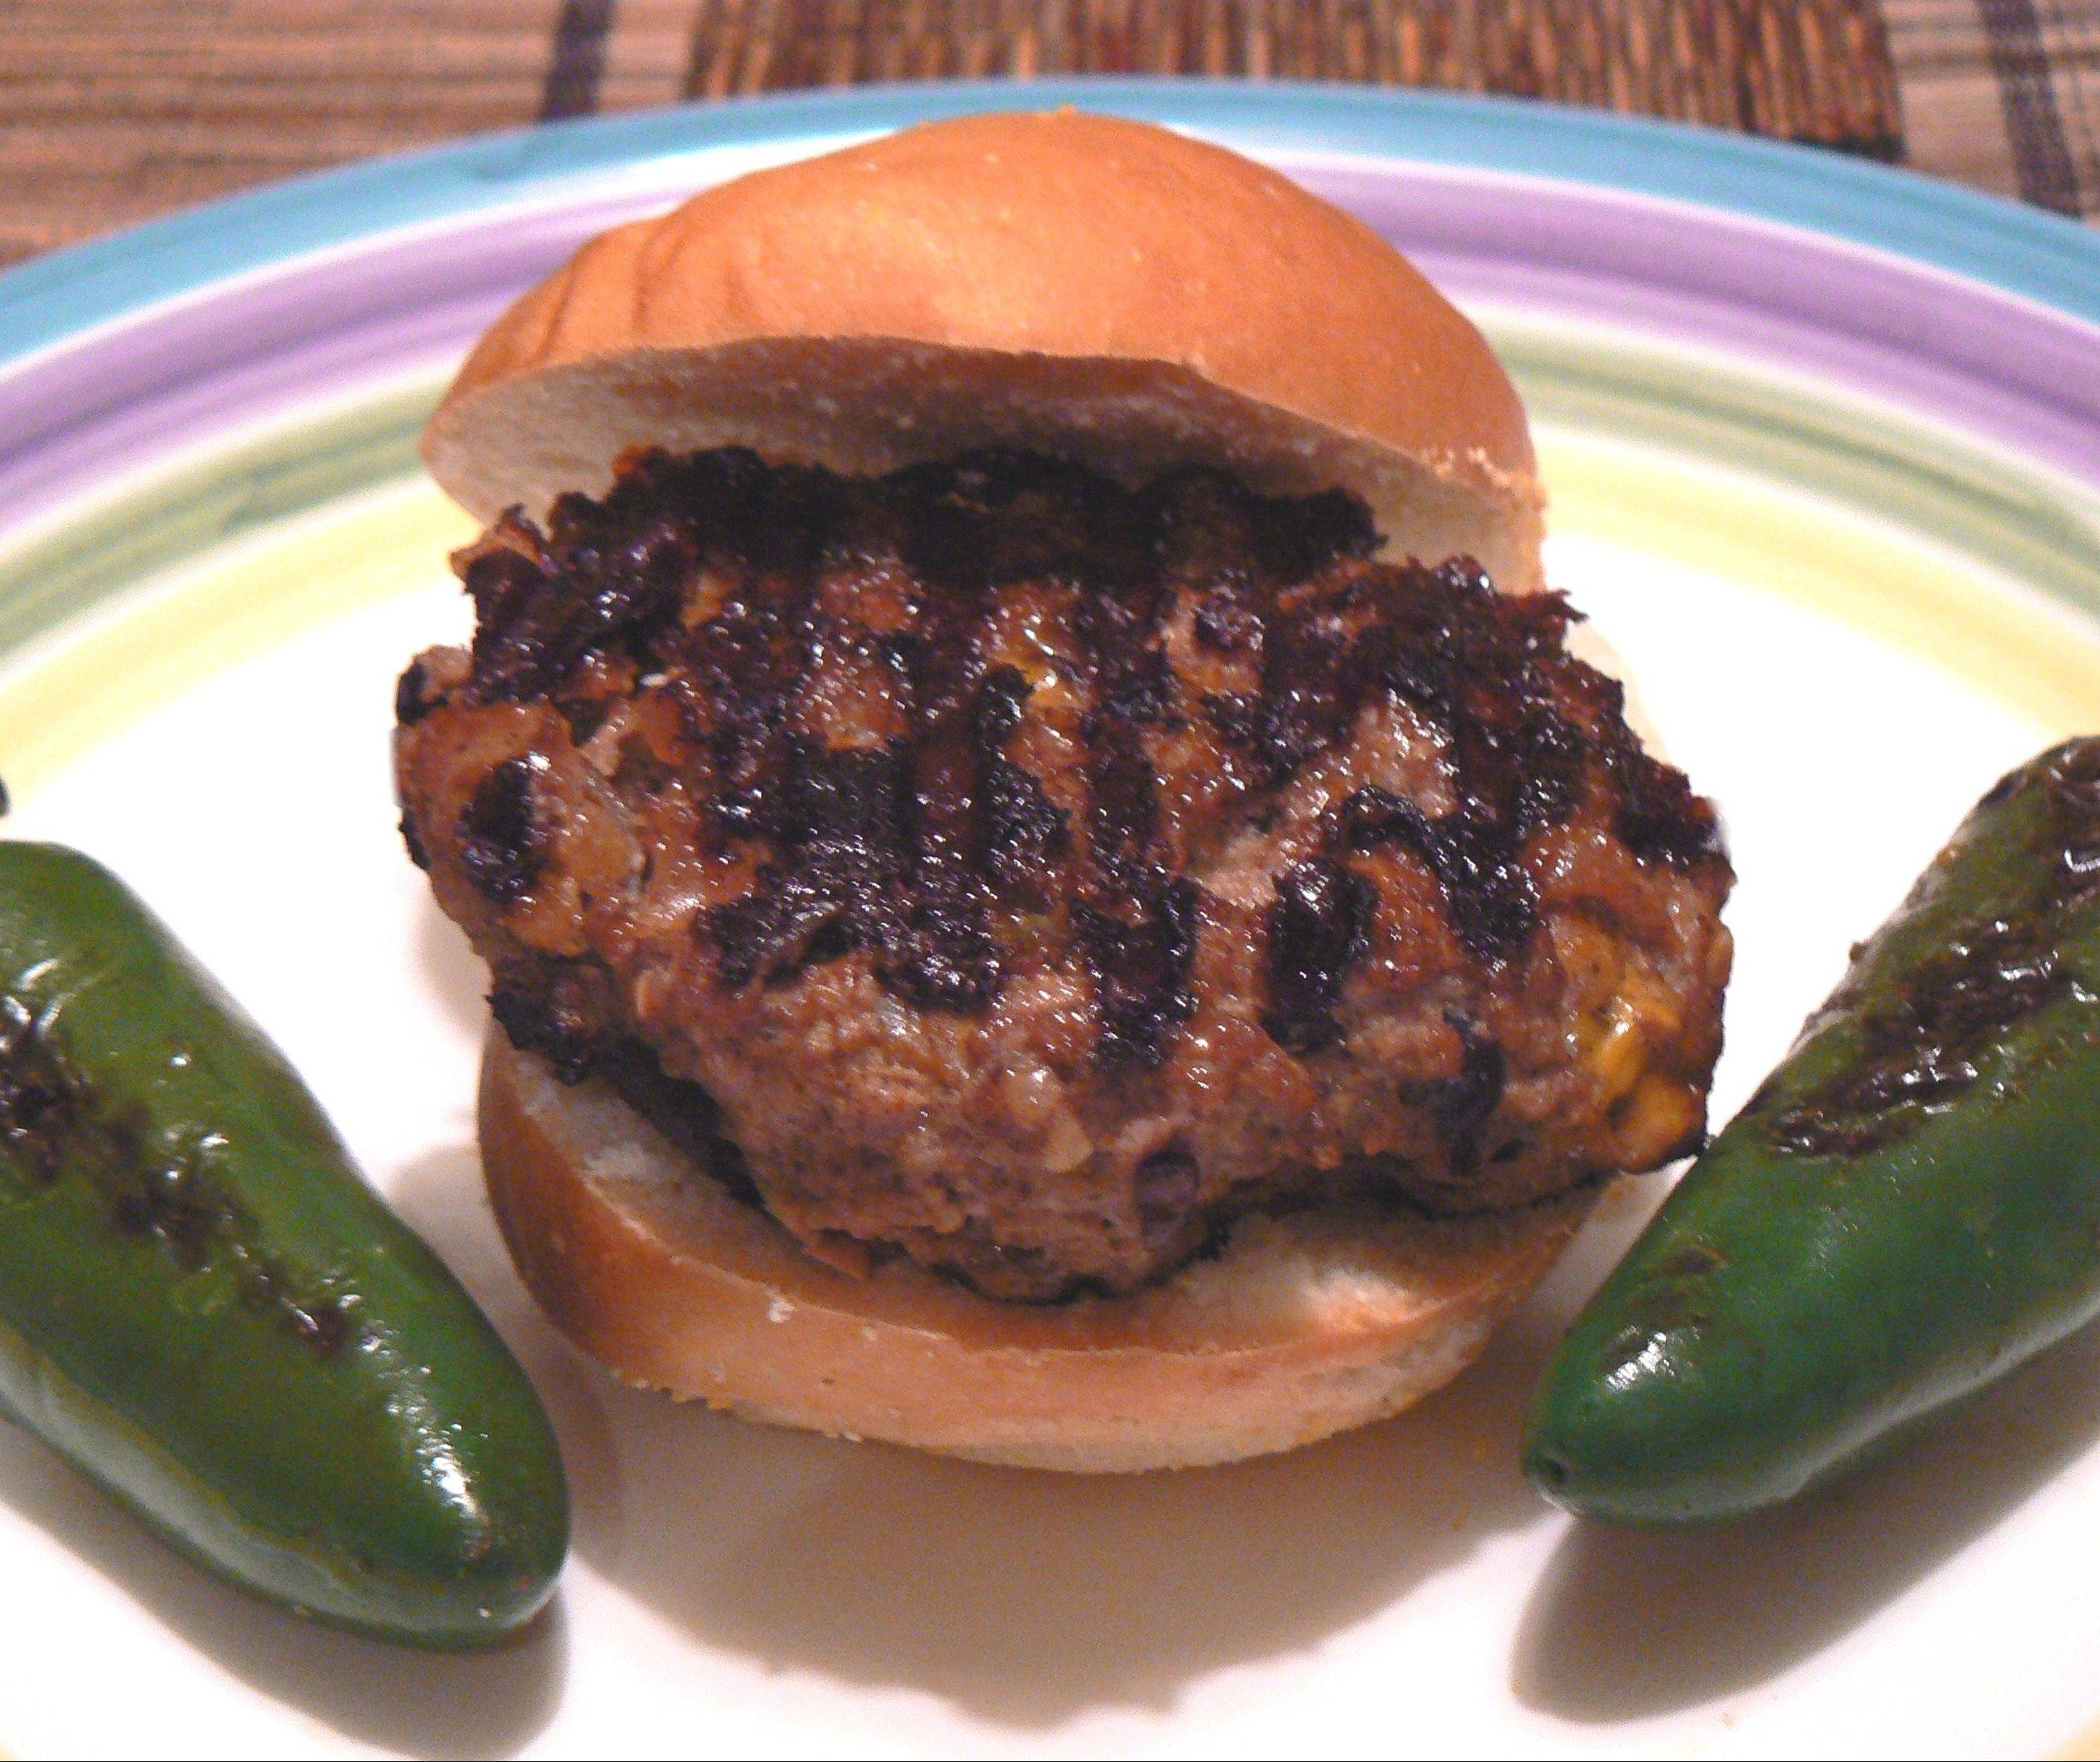 Ground beef gets mixed with sauteed peppers, Chianti and American cheese before hitting the grill. Served with cumin-infused ketchup, it makes a hearty and lean burger.